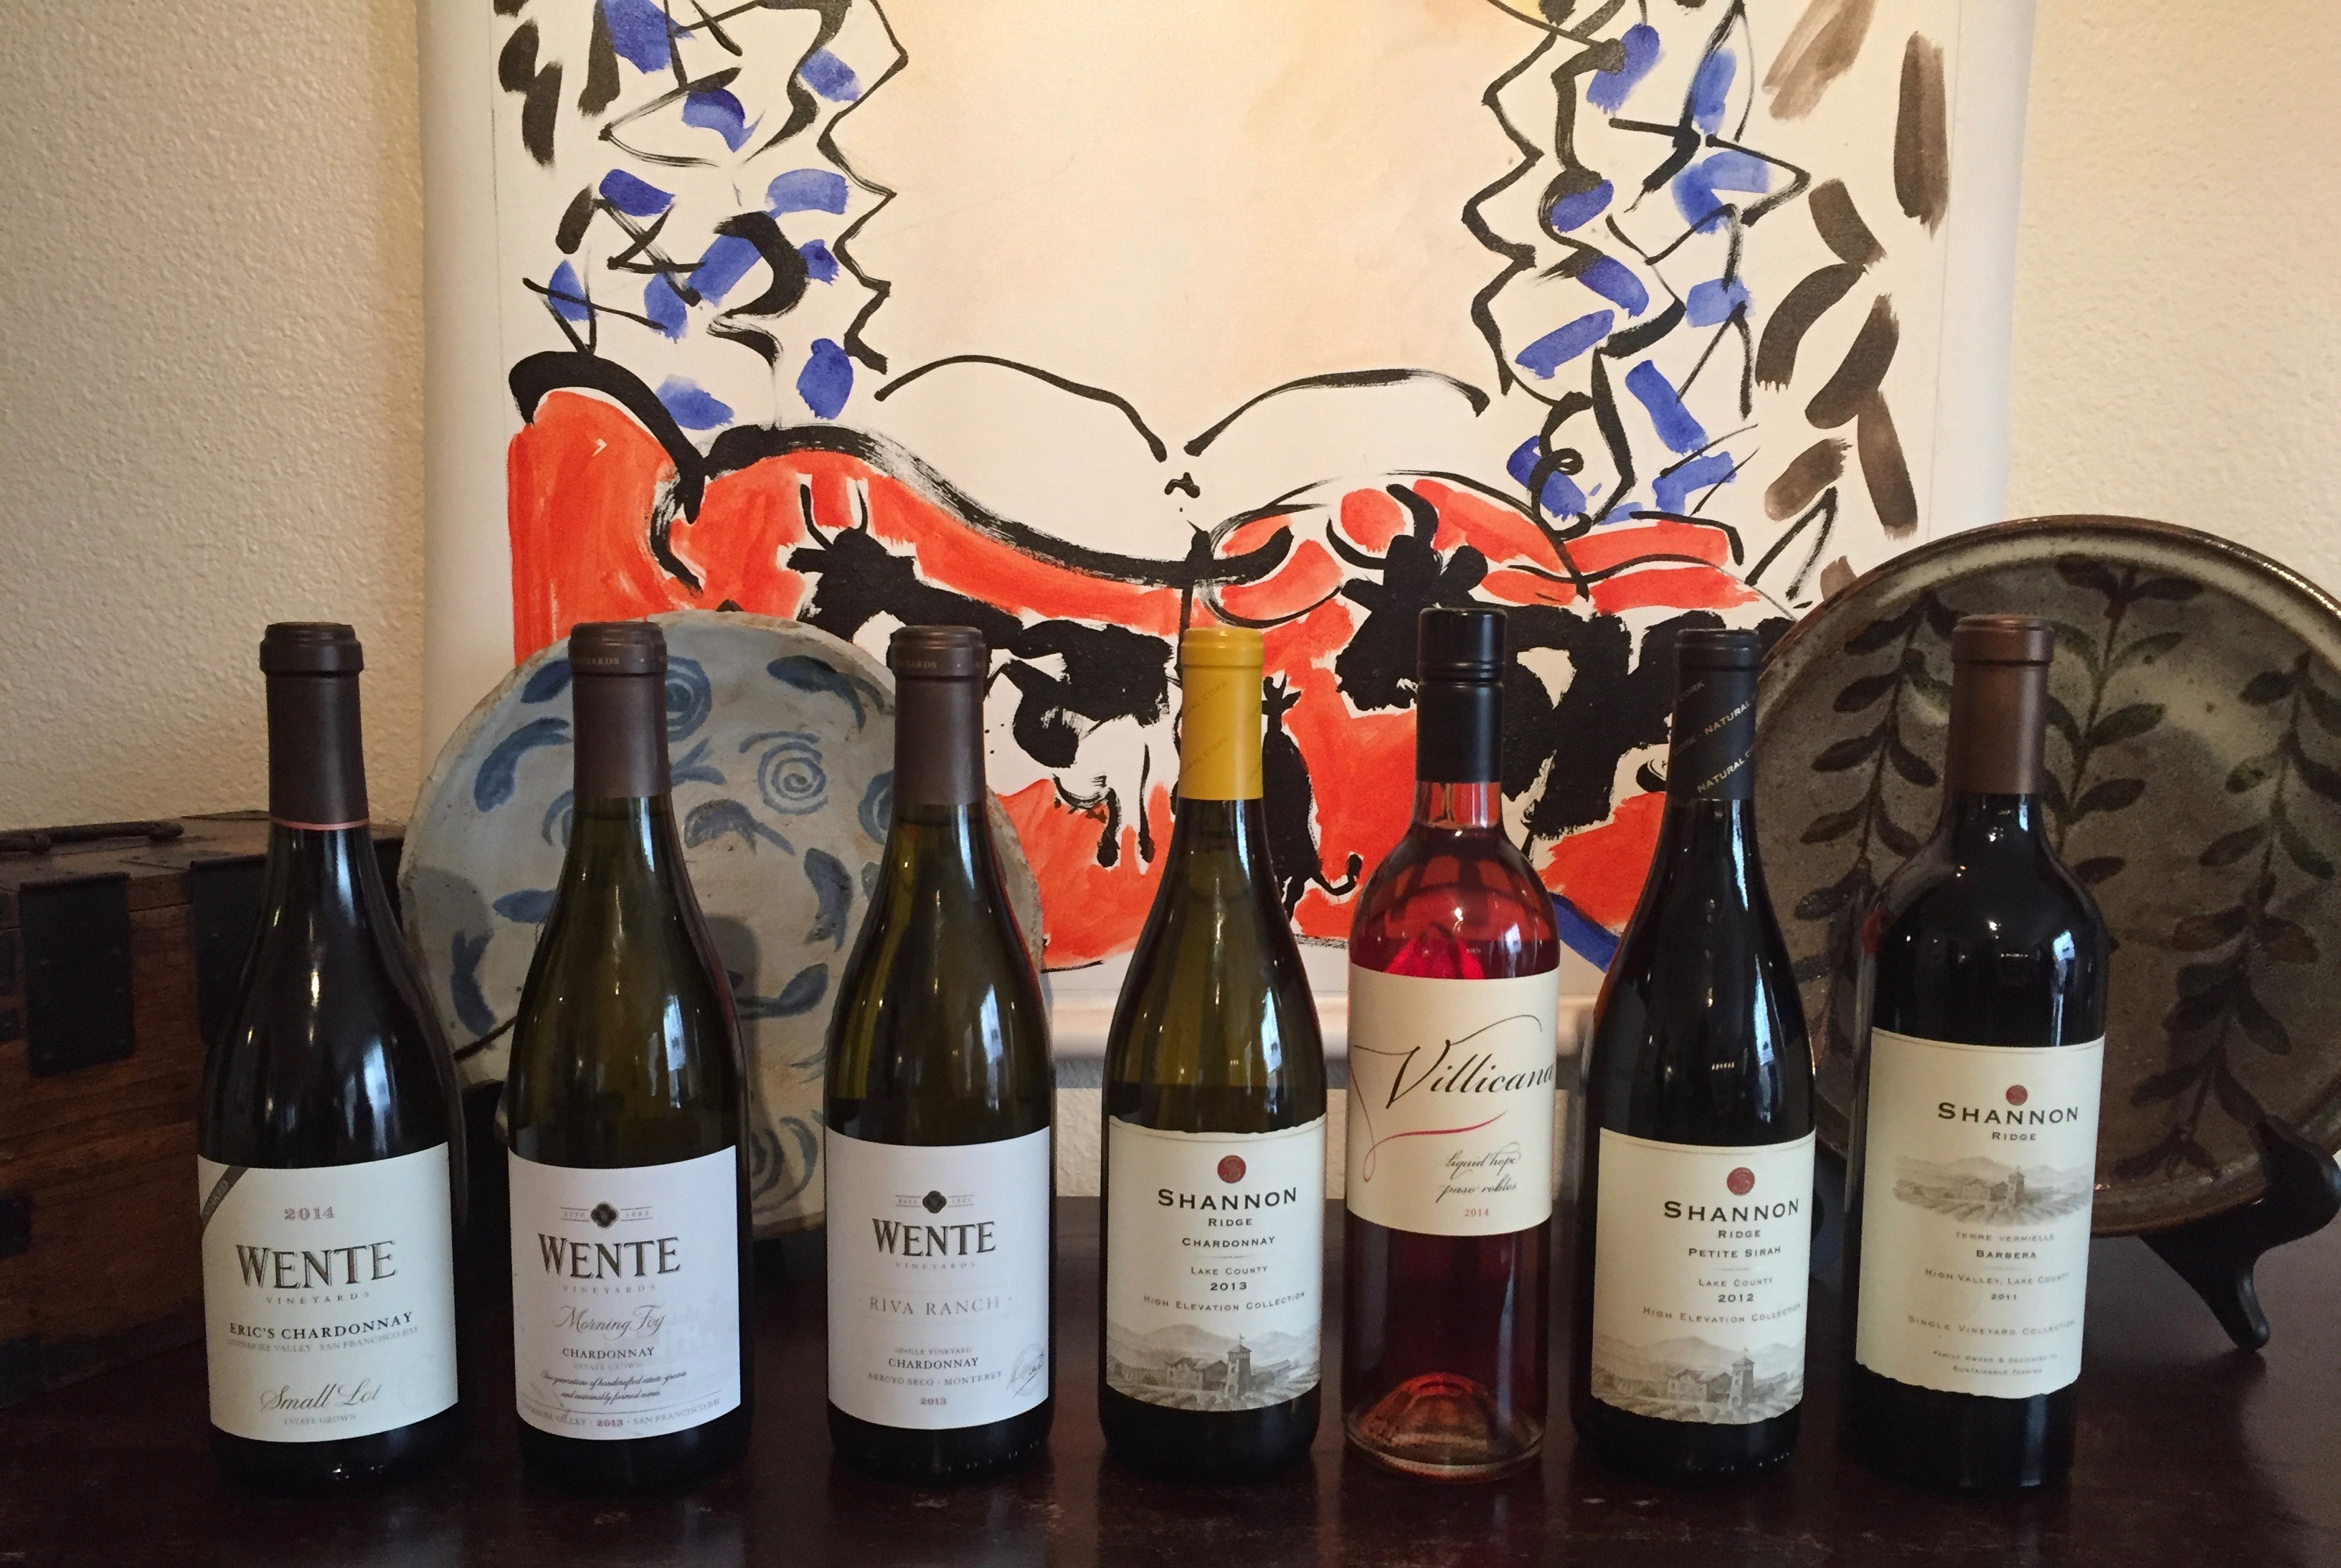 A Few Notes from My Petite Sirah Tasting Journey